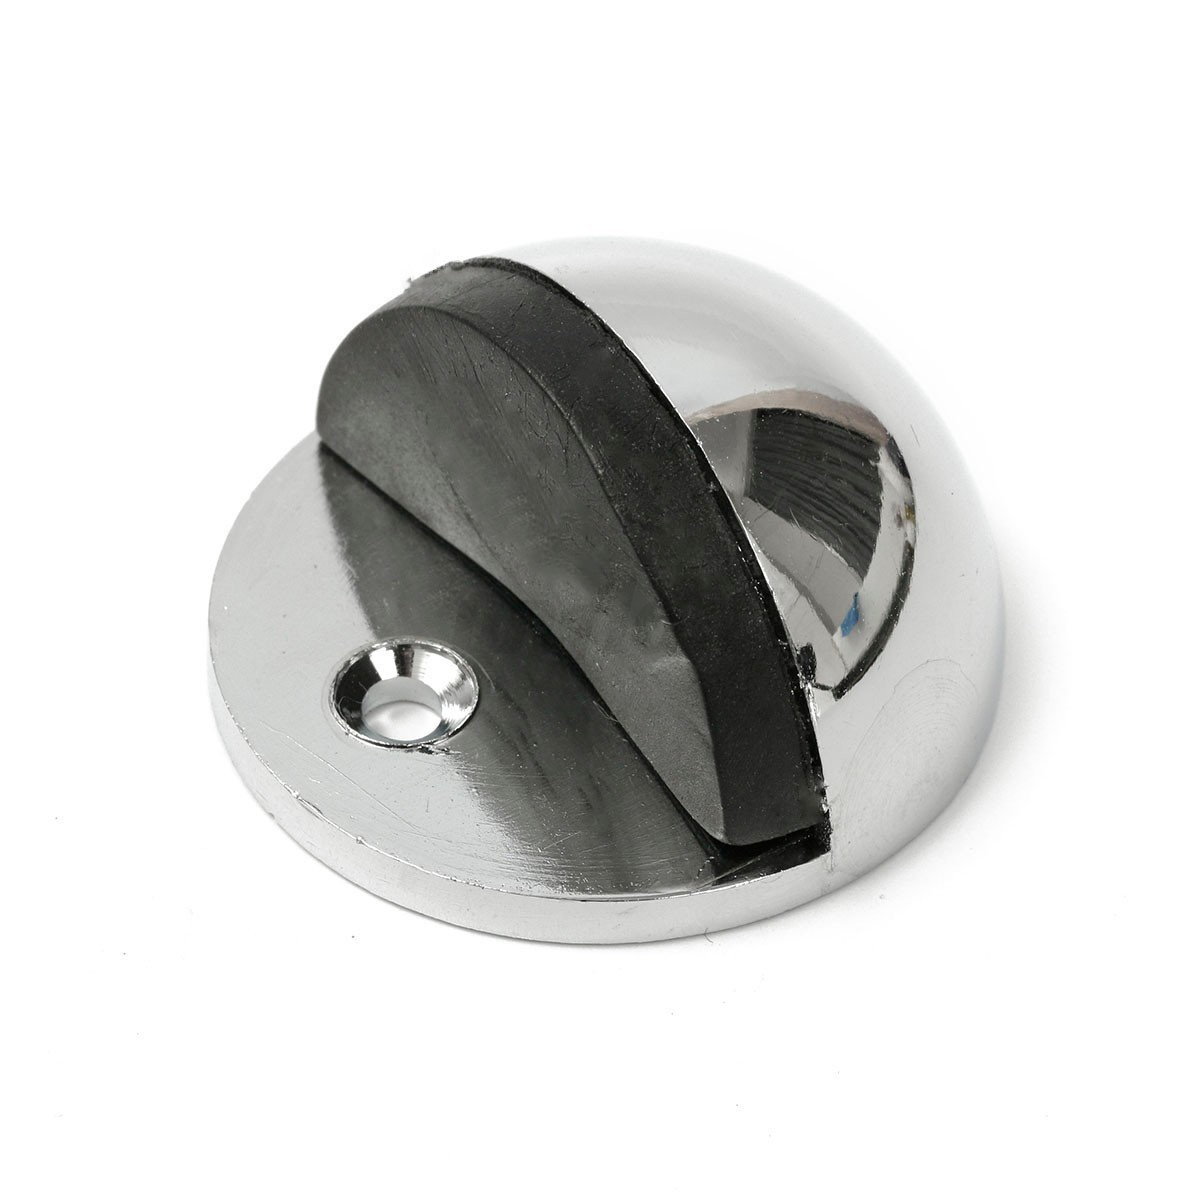 Metal oval door stop door stopper floor doorstop rubber interior holder home ebay - Door stoppers rubber ...